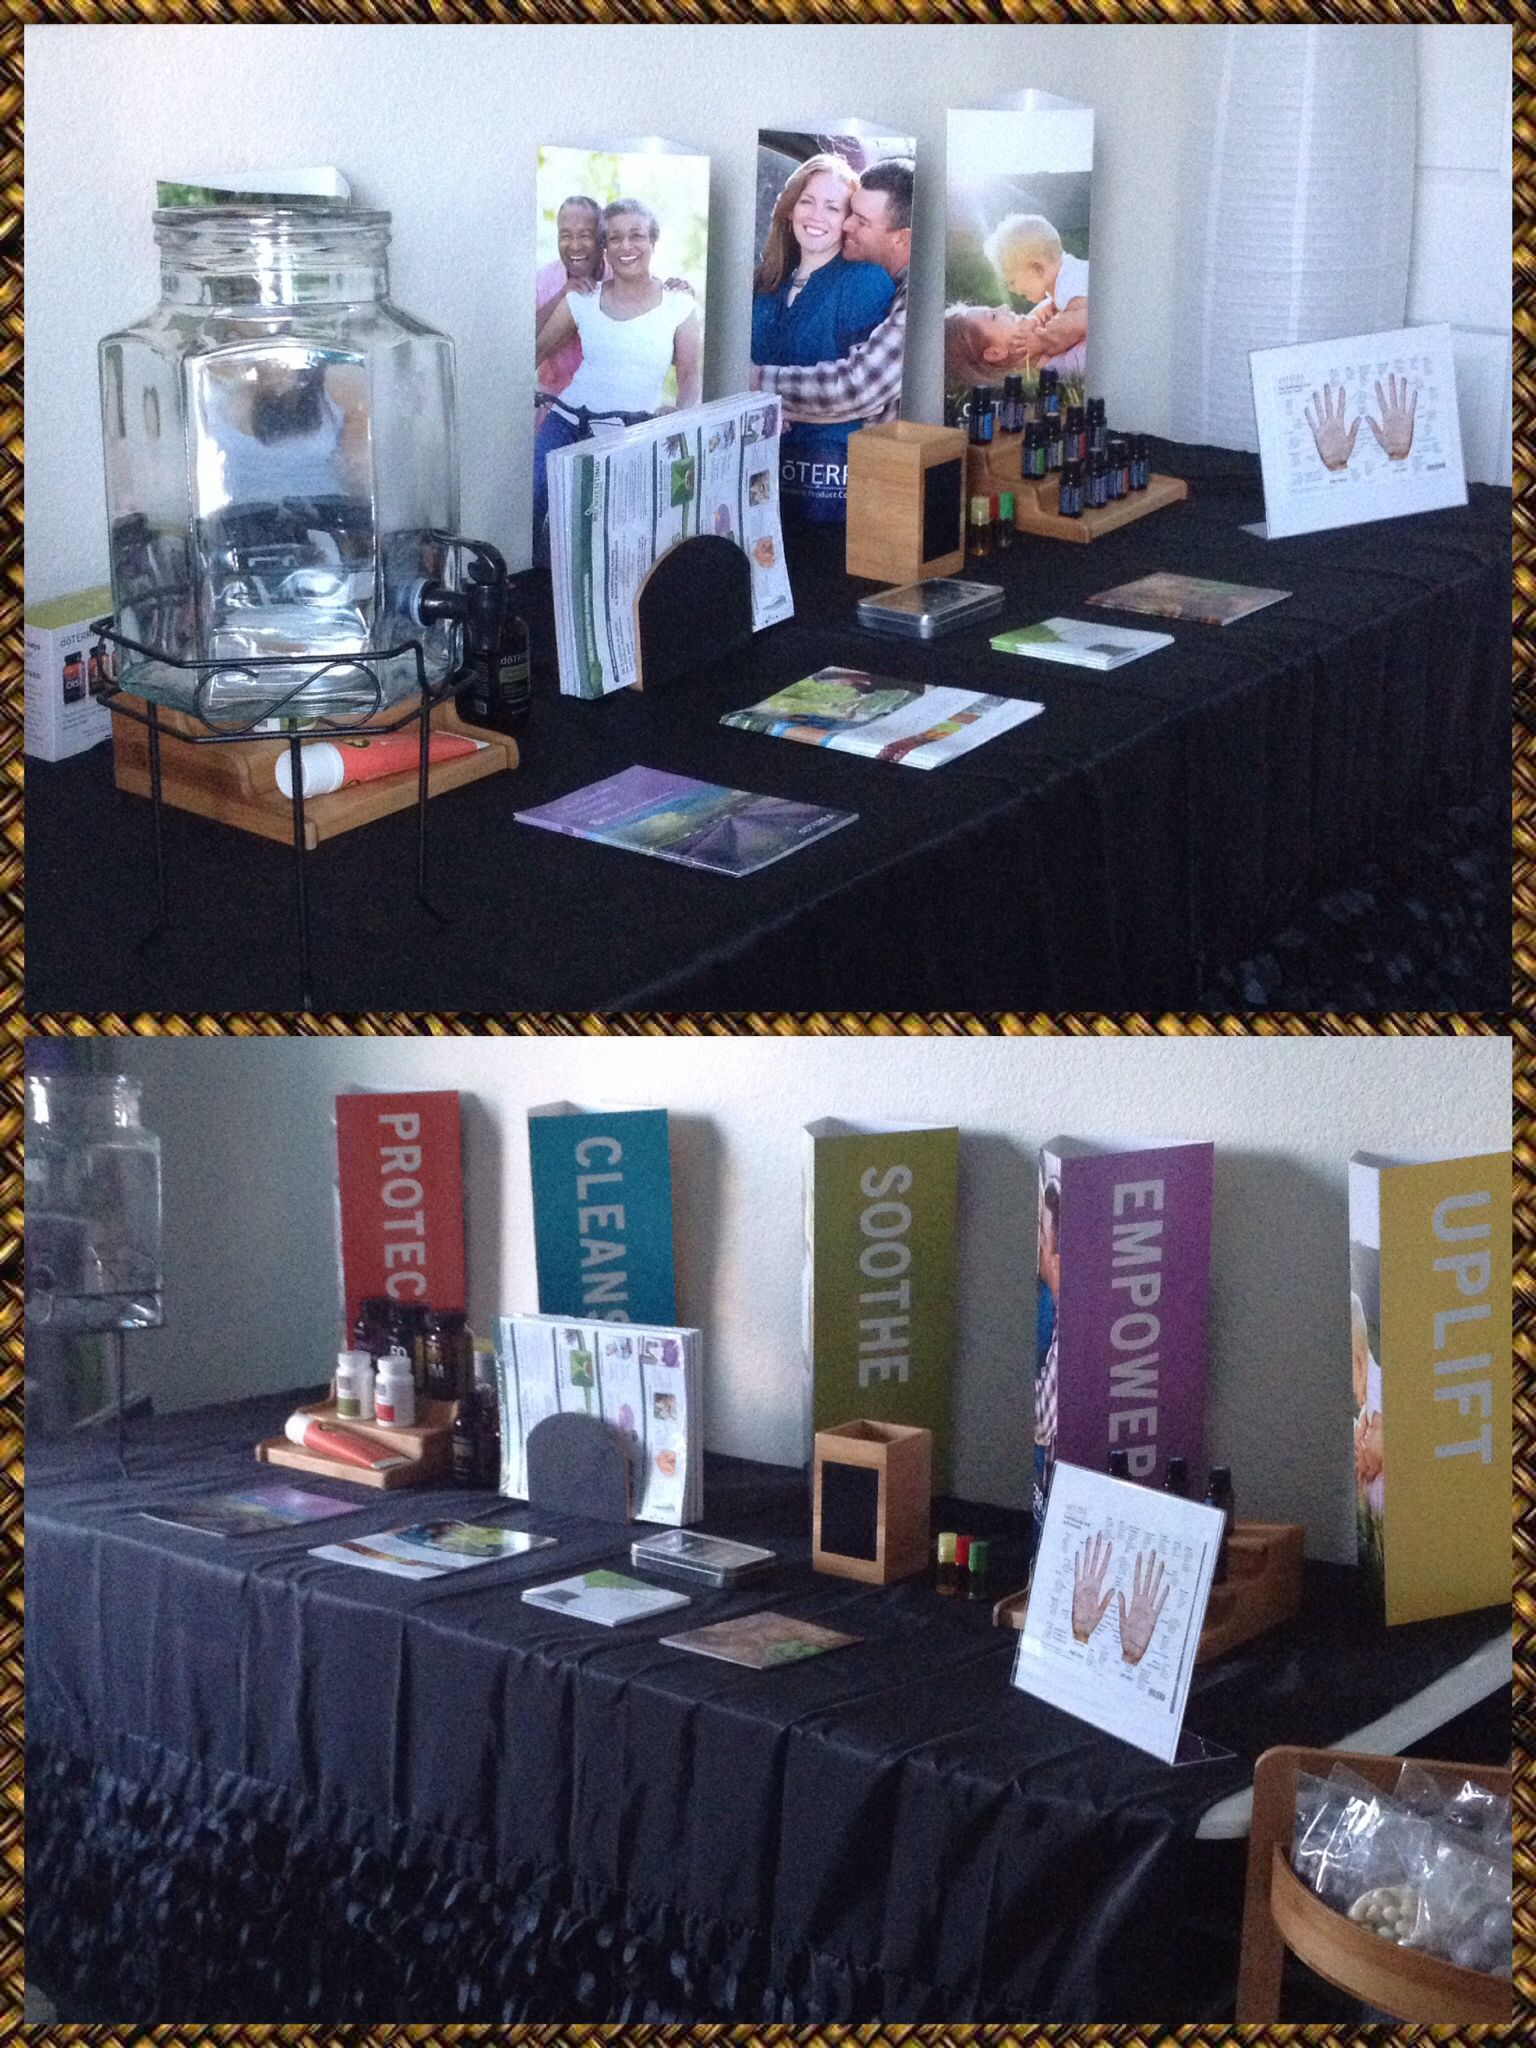 My 1st Vendor Booth Set Up For Dōterra For The 1st Annual